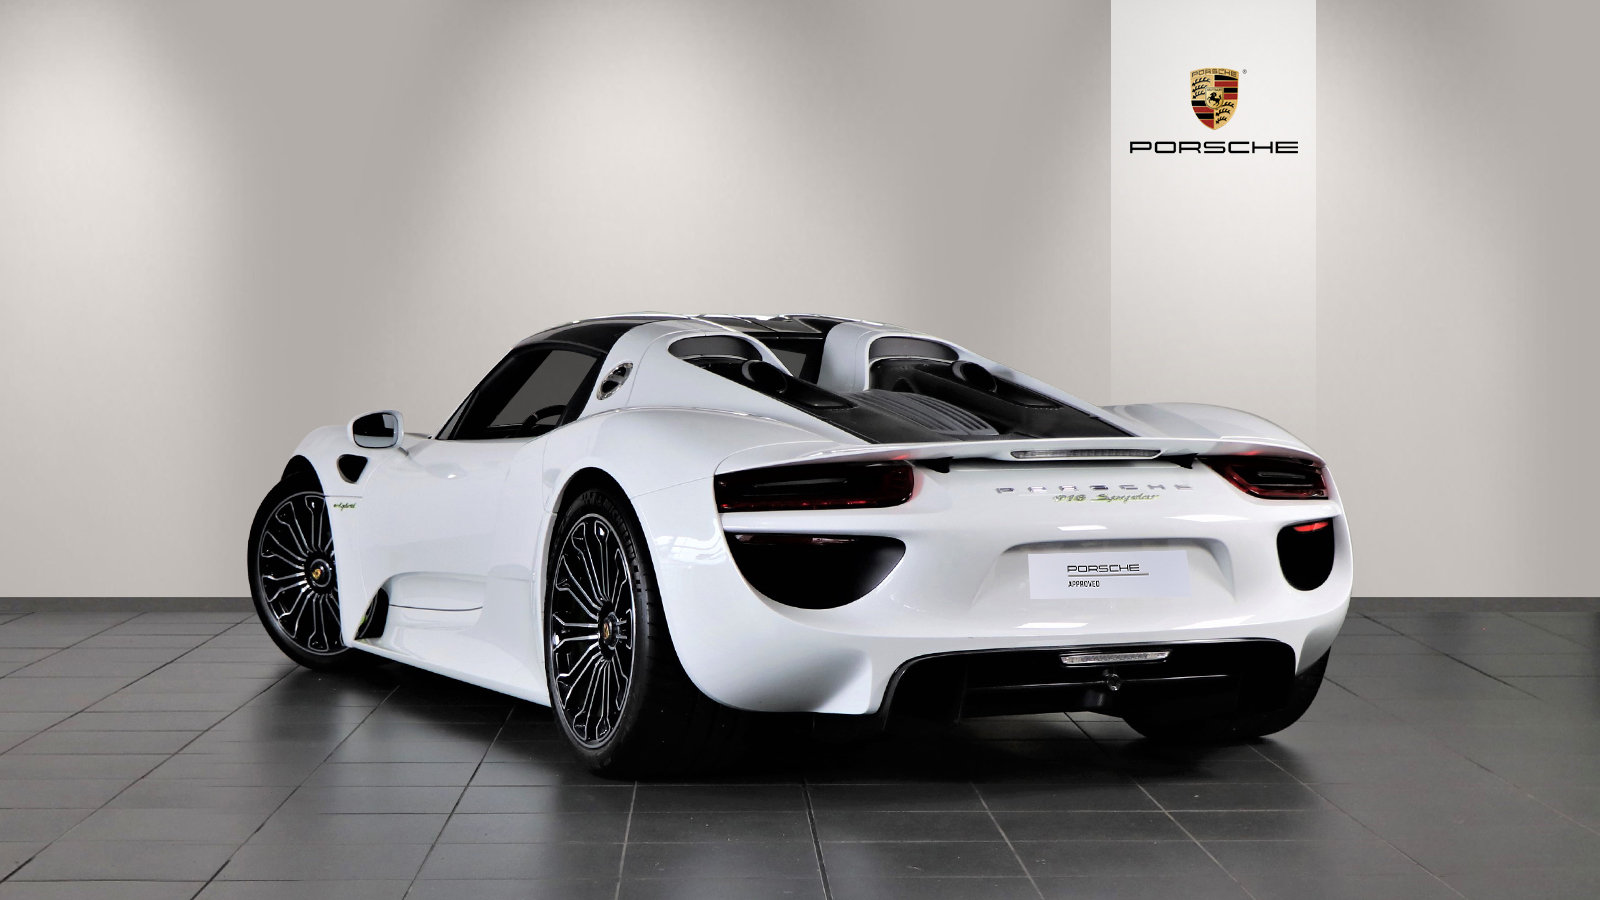 2015 Porsche 918 Spyder 2dr PDK For Sale (picture 2 of 6)